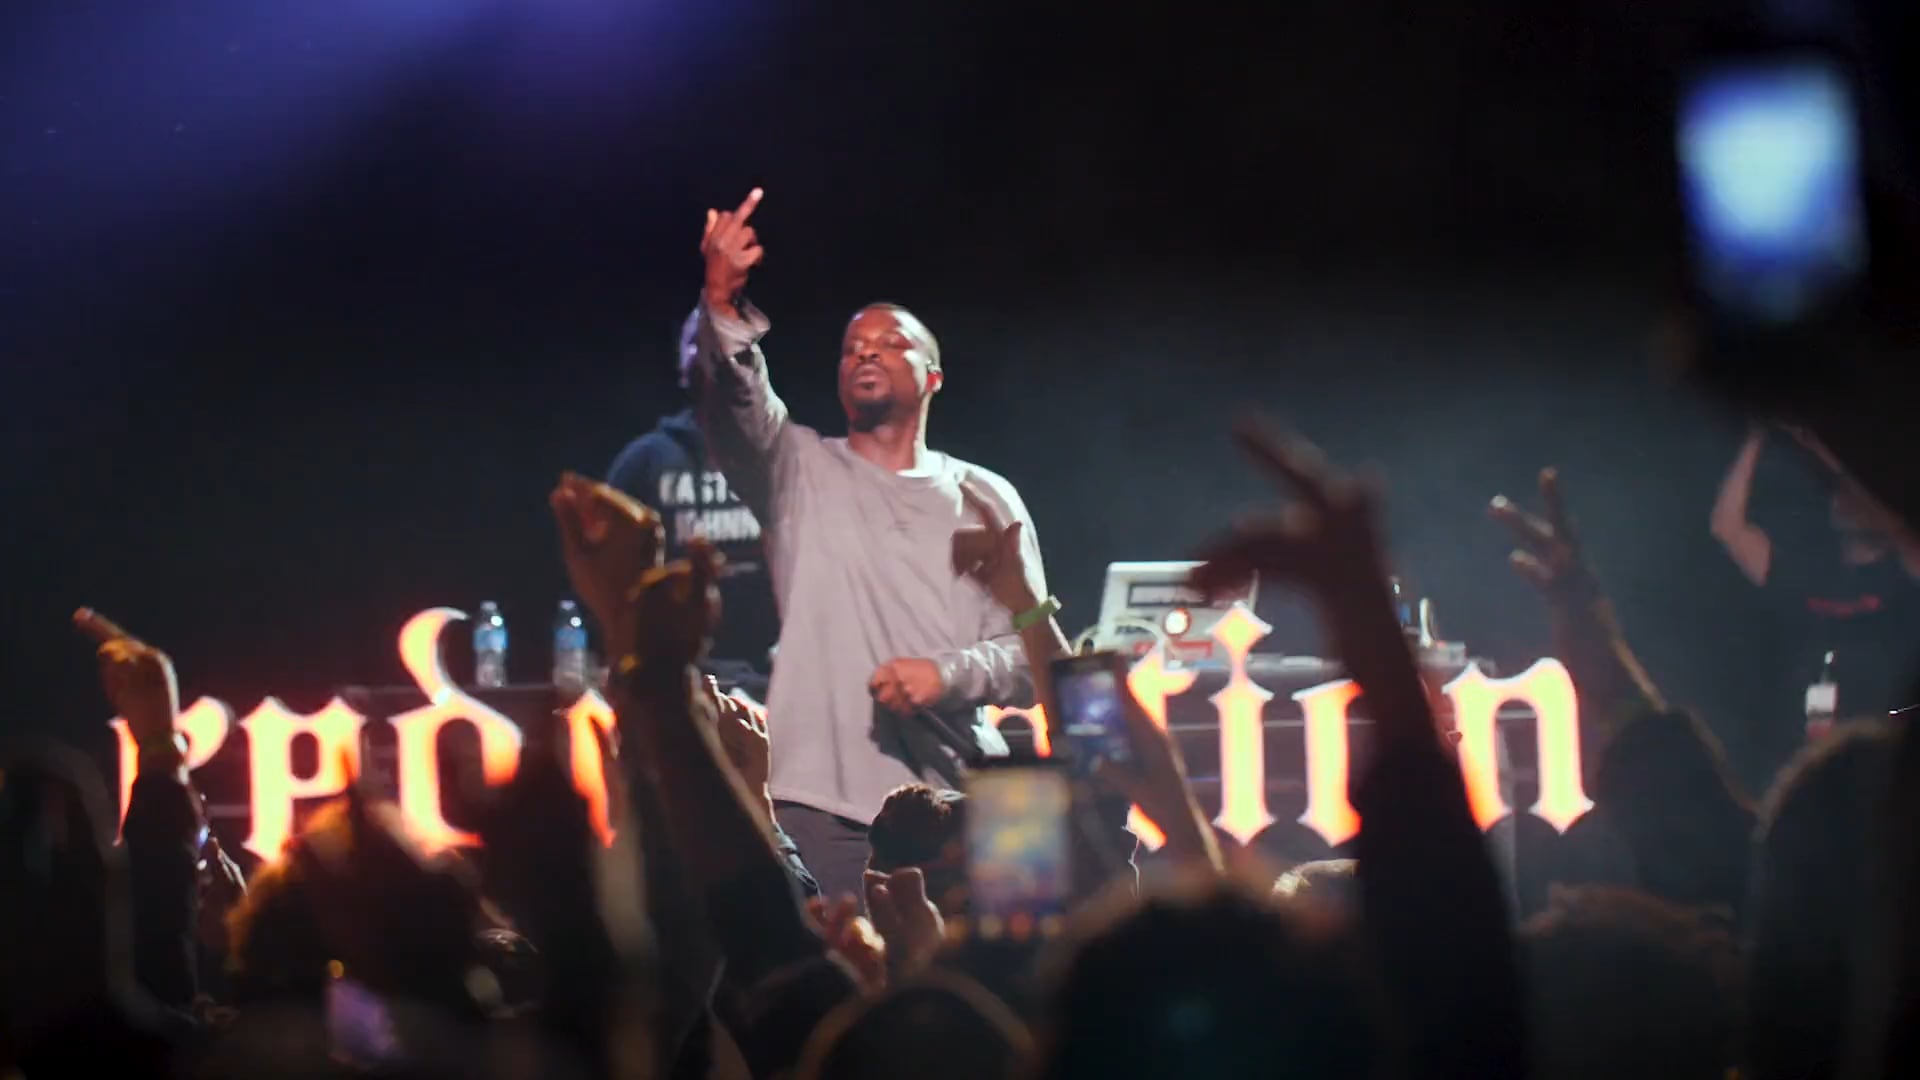 WIN - (JAY ROCK GIF - Chicago)